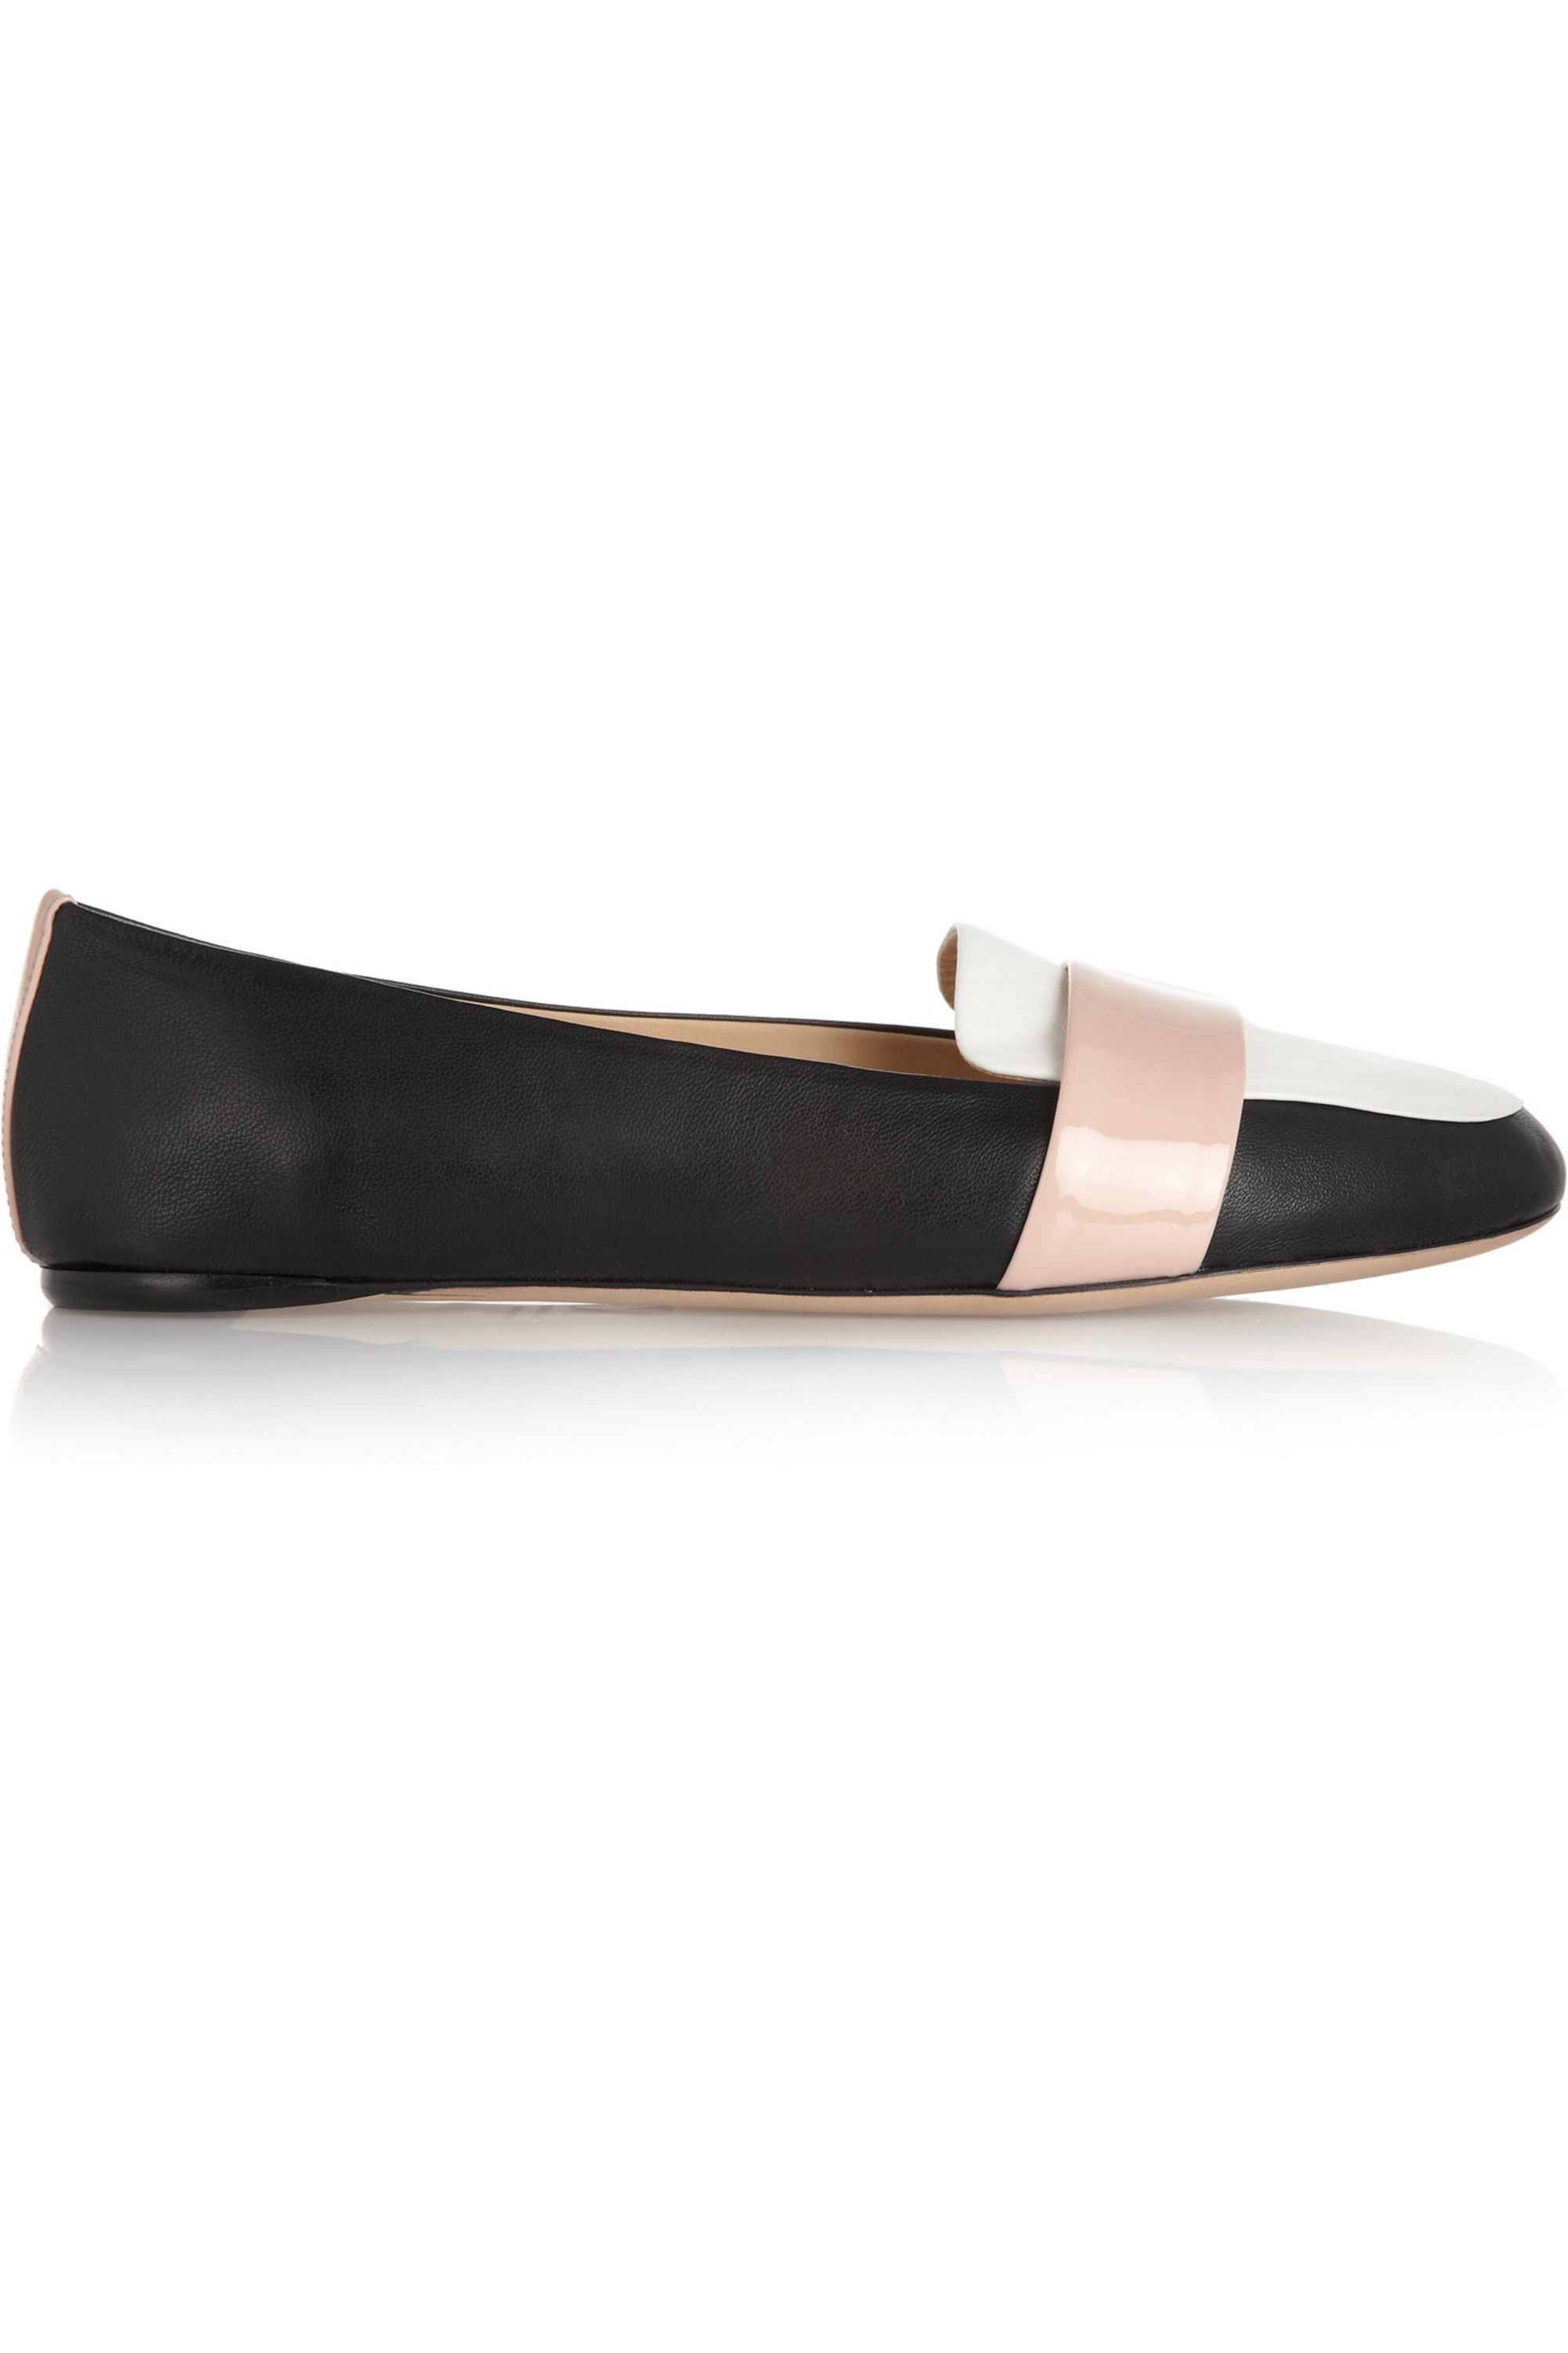 Reed Krakoff Tri-tone leather loafers